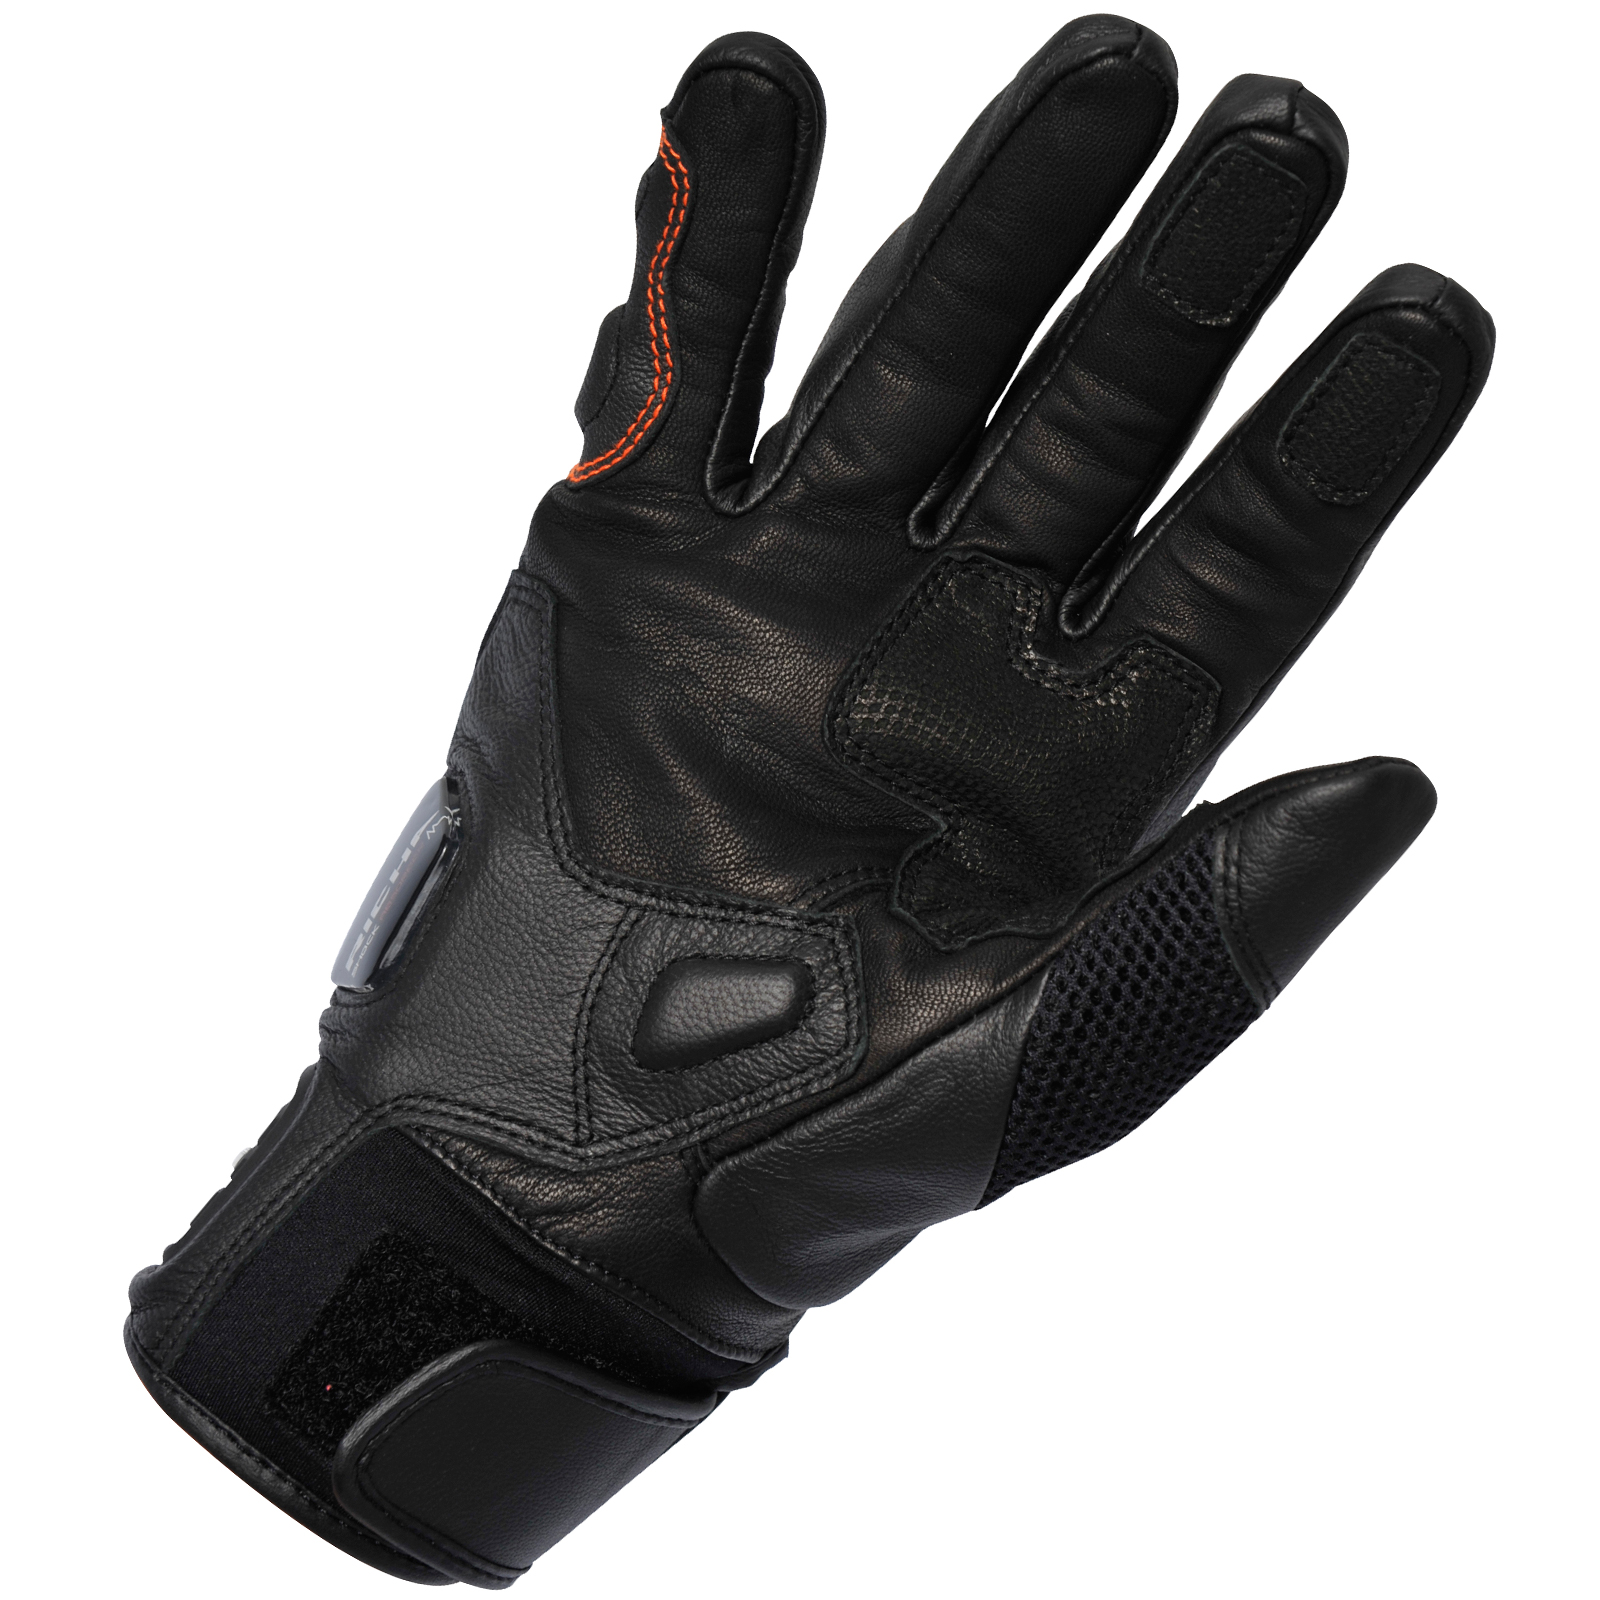 Motorcycle gloves mesh - Richa Blast Motorcycle Gloves Leather Air Strech Mesh